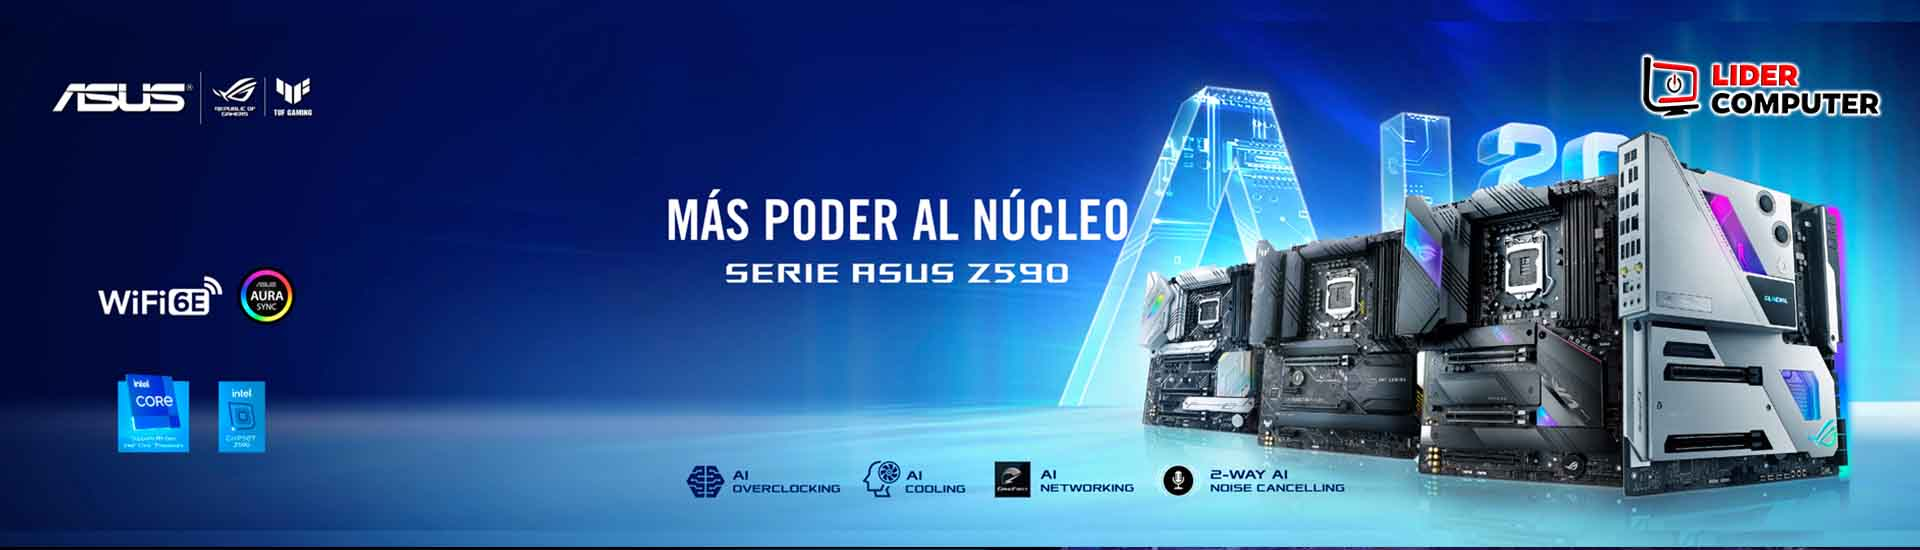 BANNERS LIDER